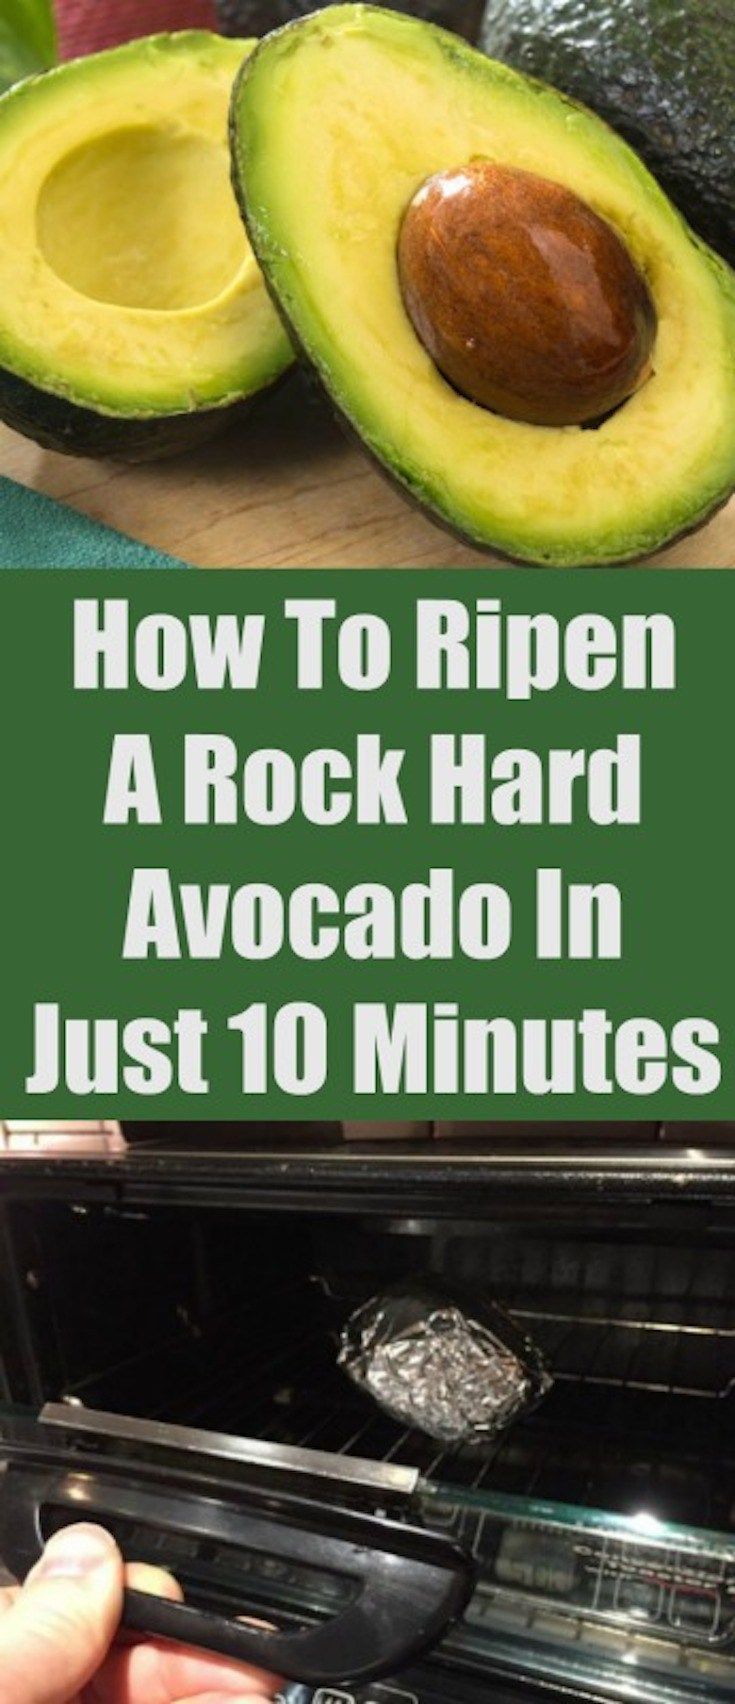 Amazing avocado hack to ripen it in just 10 minutes. #hacks #avocado #avocadolovers #tips #cookingtips